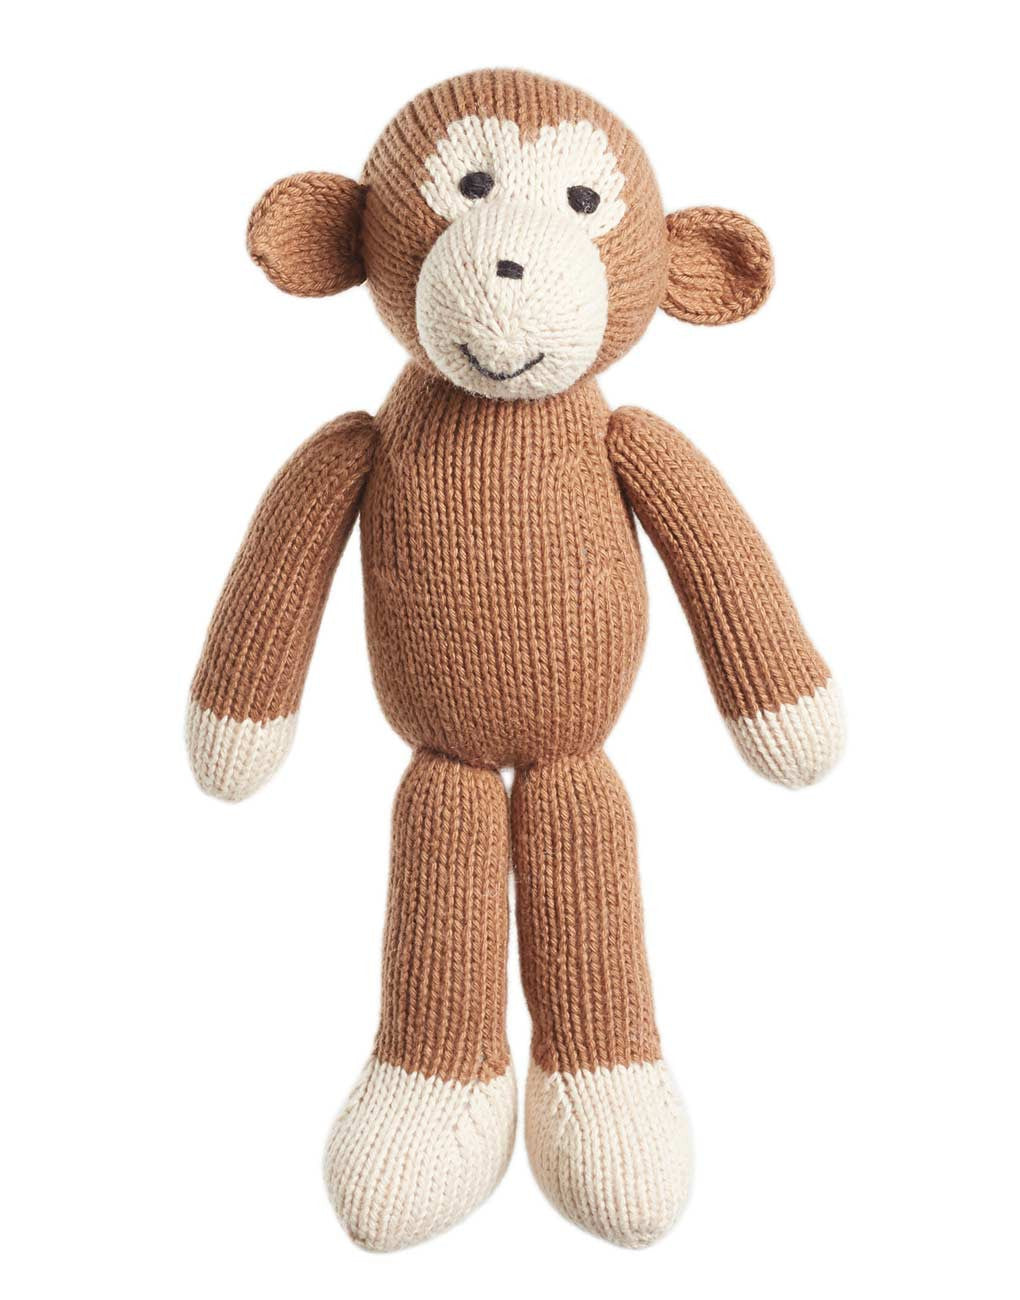 Fair Trade Handmade Knit Stuffed Animal Monkey The Little Market